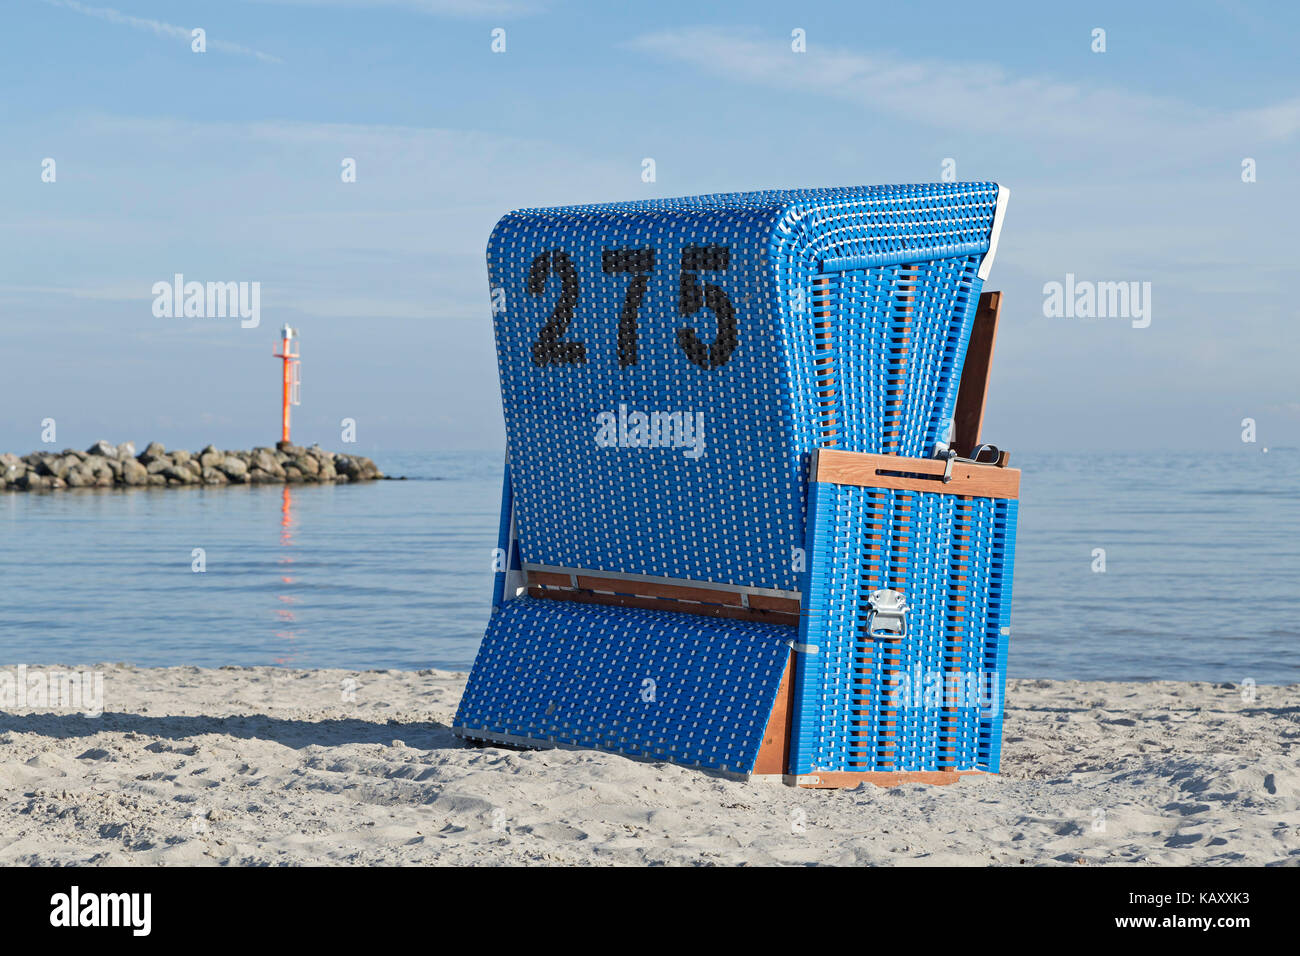 basket chair at the beach, Baltic Sea Spa Damp, Schleswig-Holstein, Germany - Stock Image